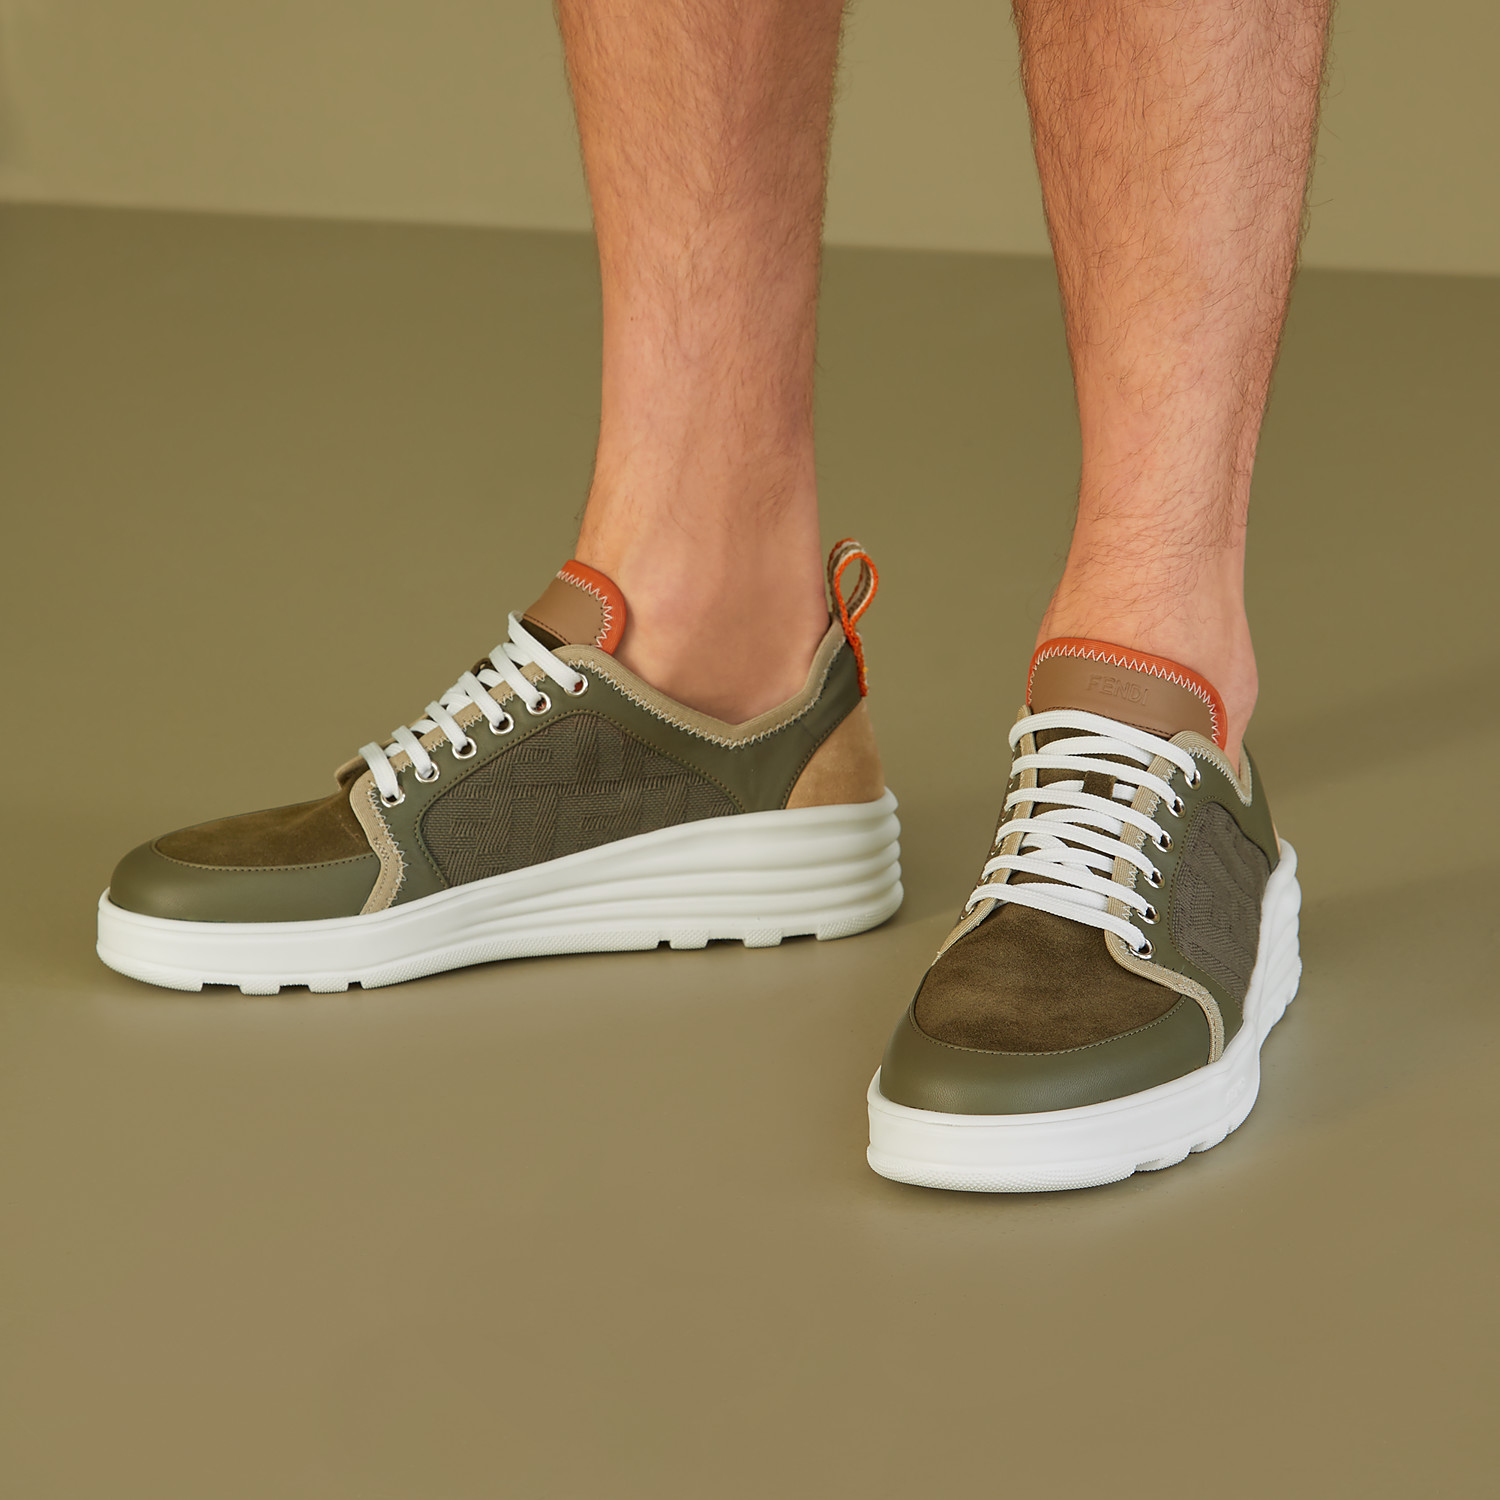 FENDI SNEAKERS - Multicolour leather and suede low-tops - view 5 detail